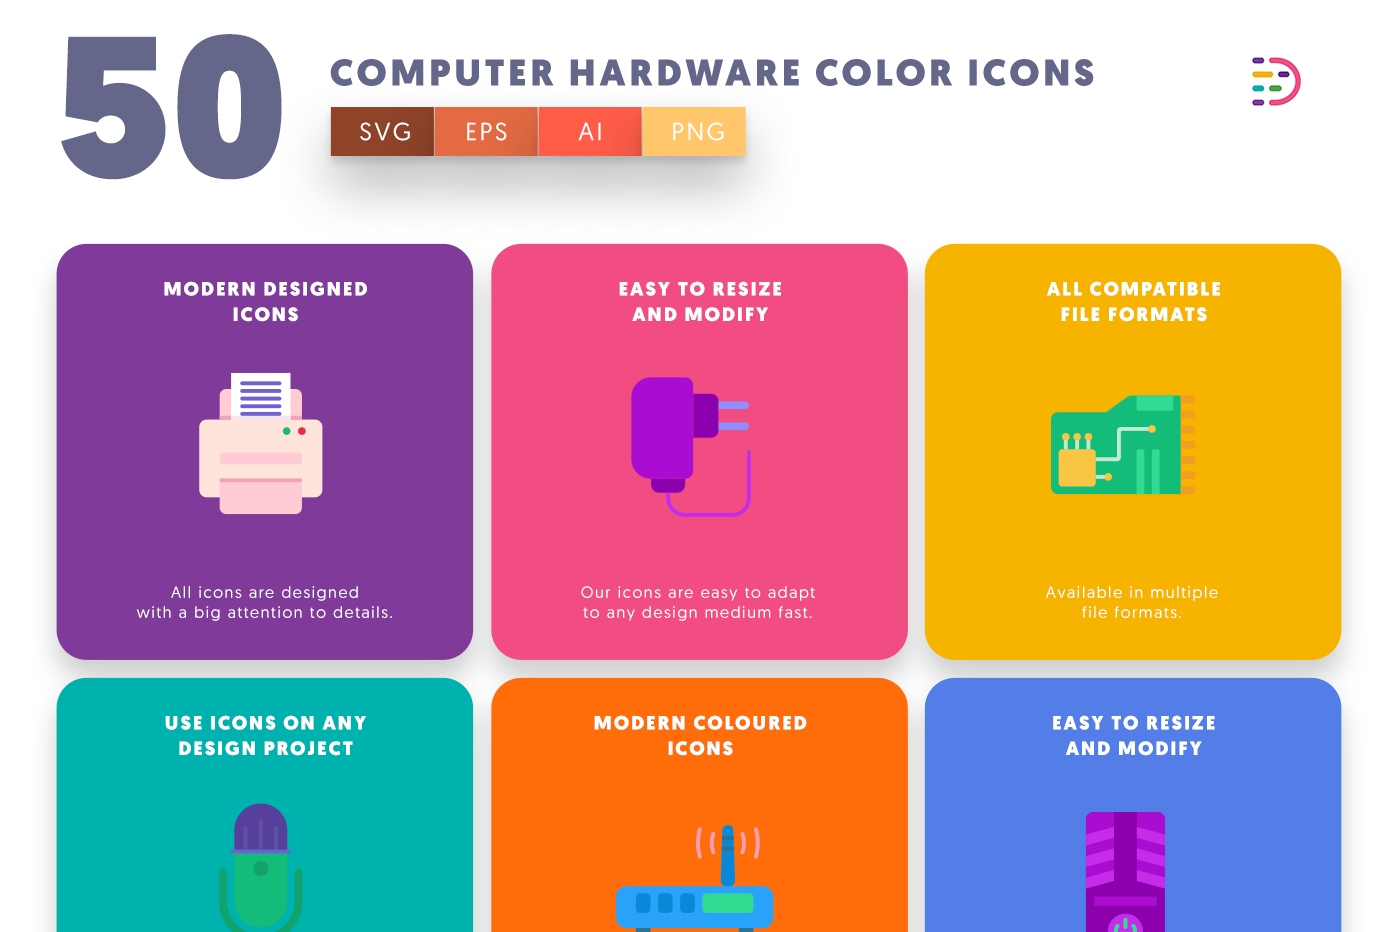 50 Computer Hardware Color Icons with colored backgrounds